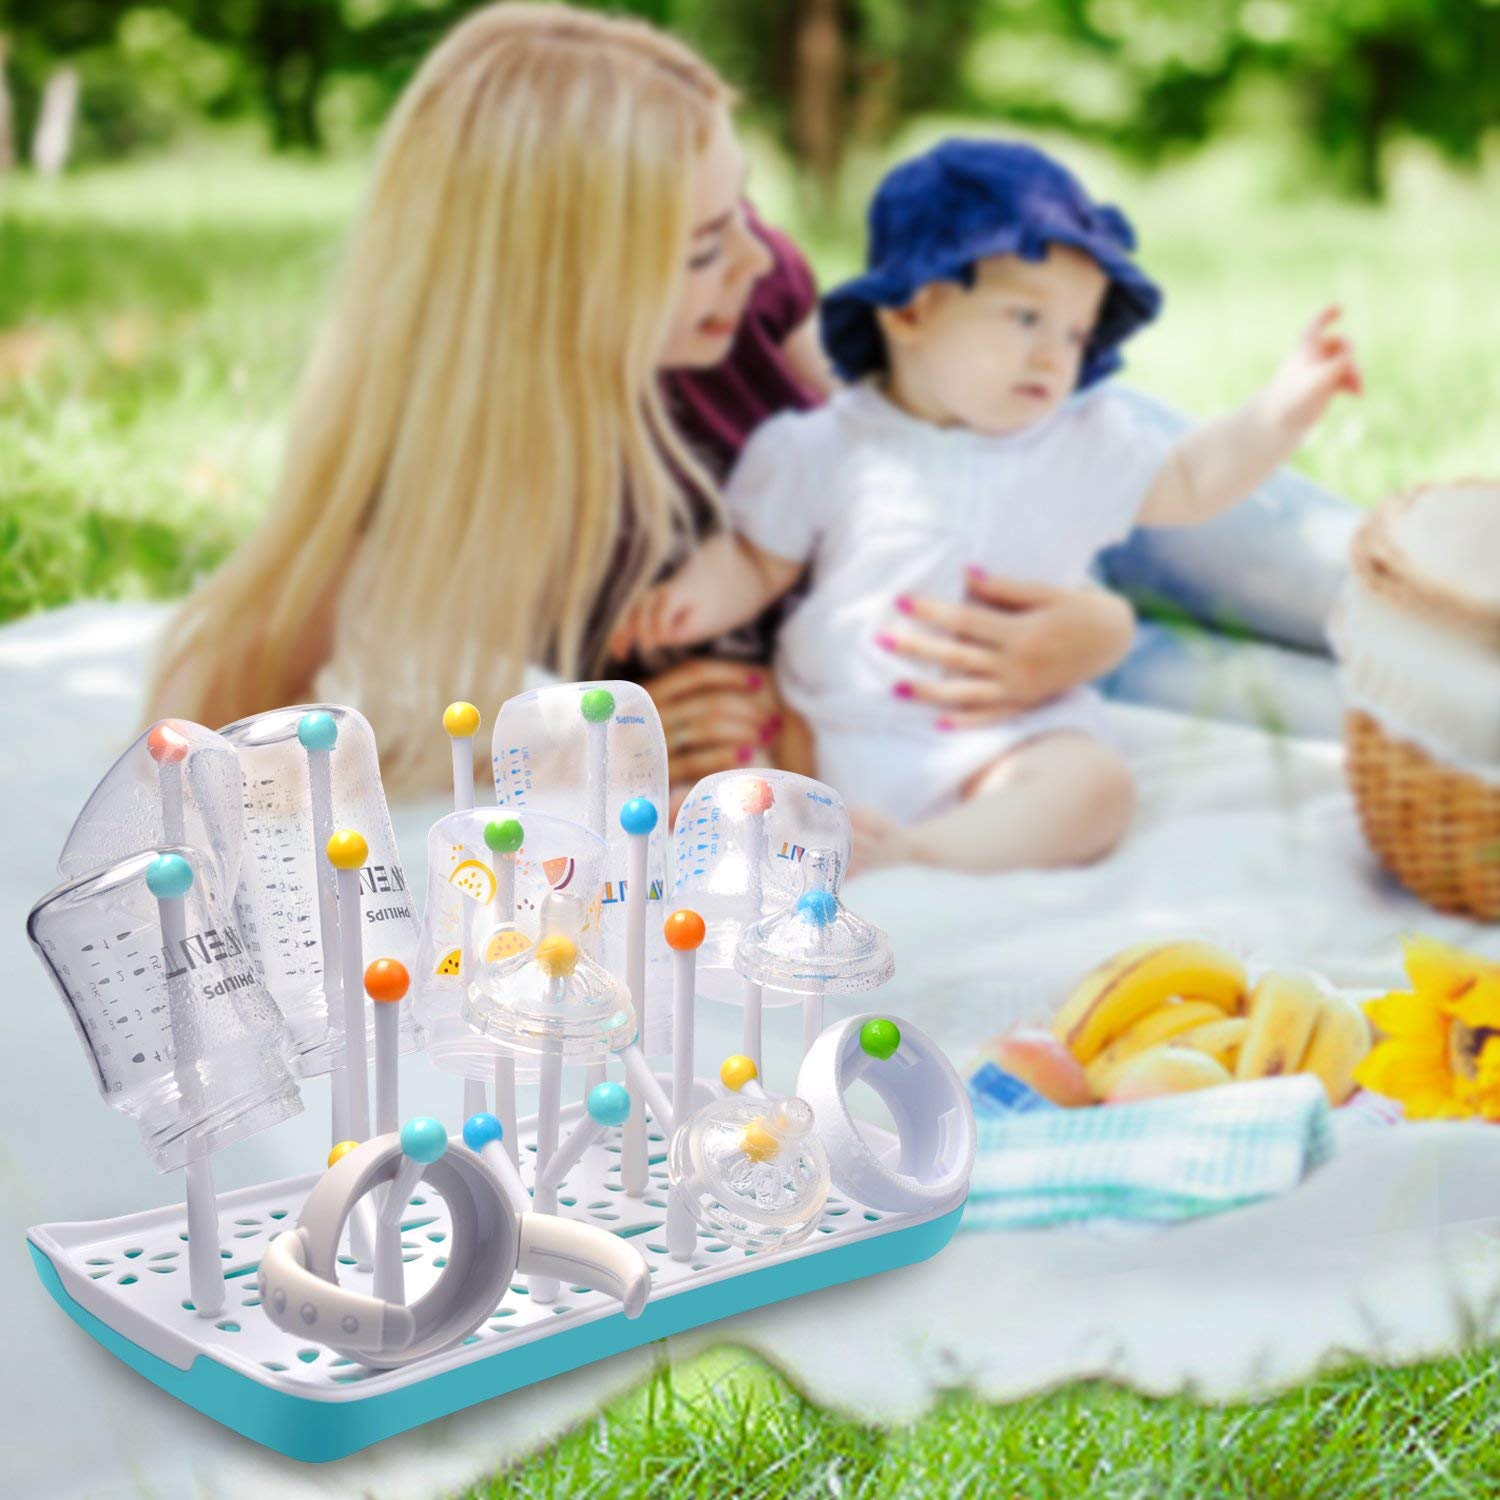 Baby Bottle Drying Rack with Drainer Rectangle Drying Rack Yellow Termichy Countertop Bottle Holder for Baby and Toddler